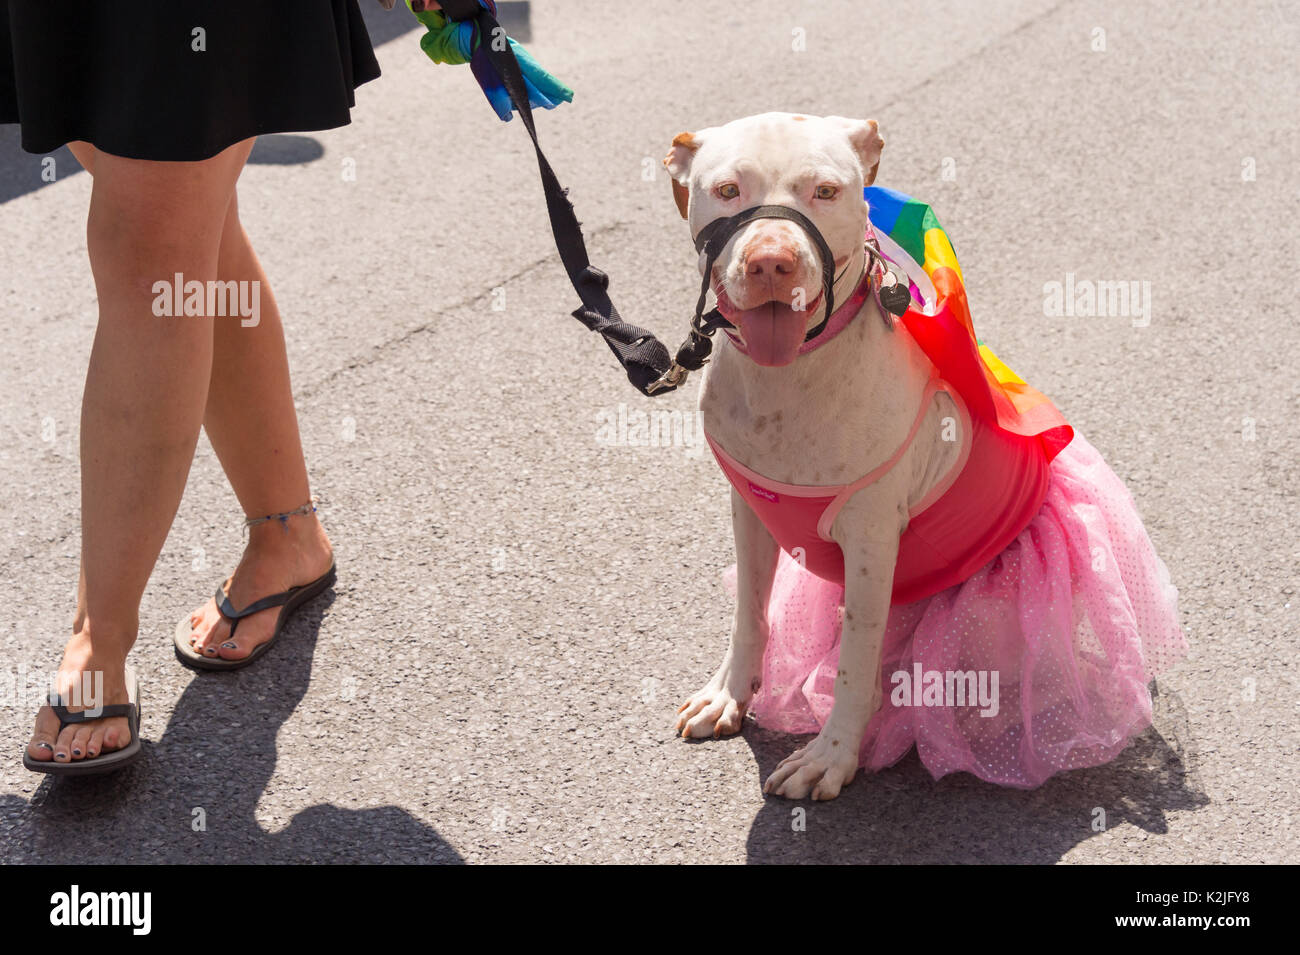 Pit bull terrier dog with a gay rainbow flag on its back and a pink skirt at Montreal Pride Parade - Stock Image